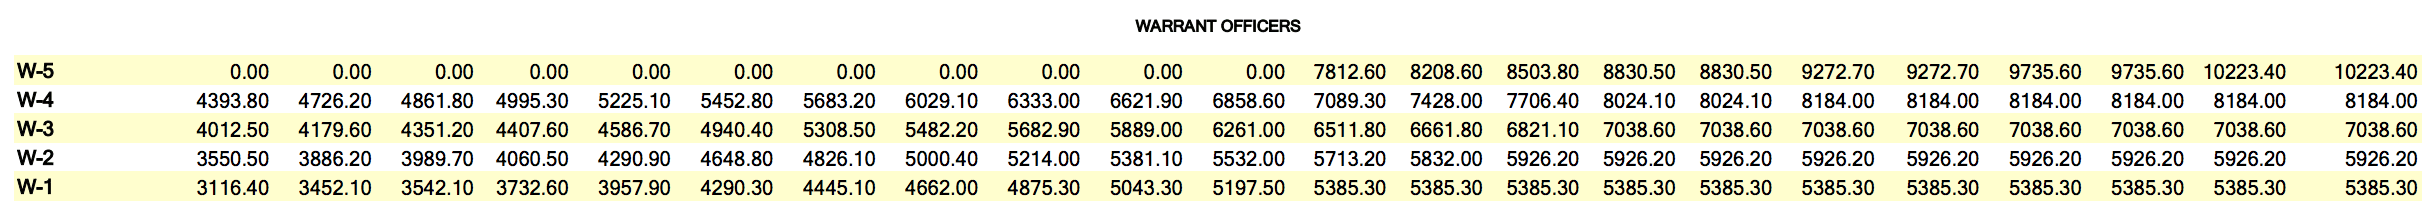 2019 WARRANT OFFICERS PAY CHART